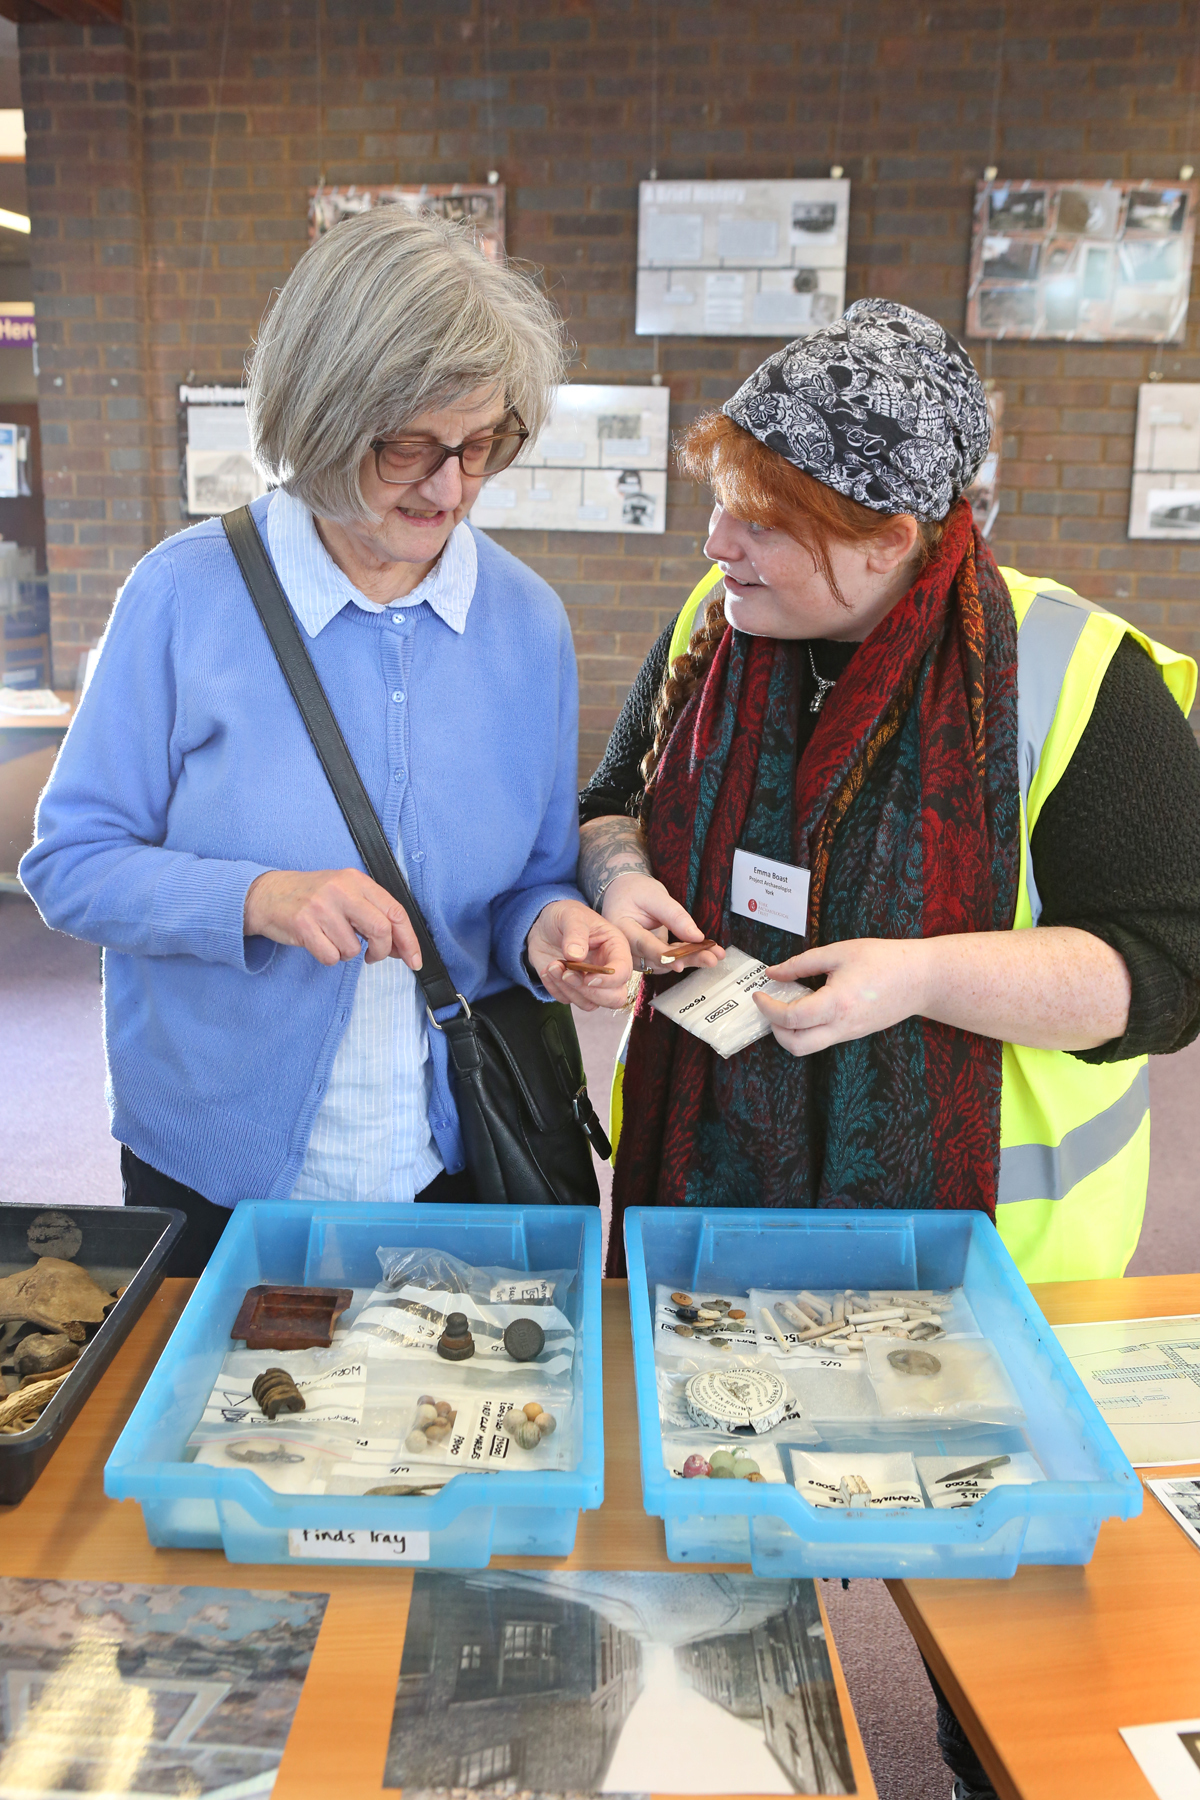 Margaret Mathews from Brompton discusses finds with Emma Boast from YAT